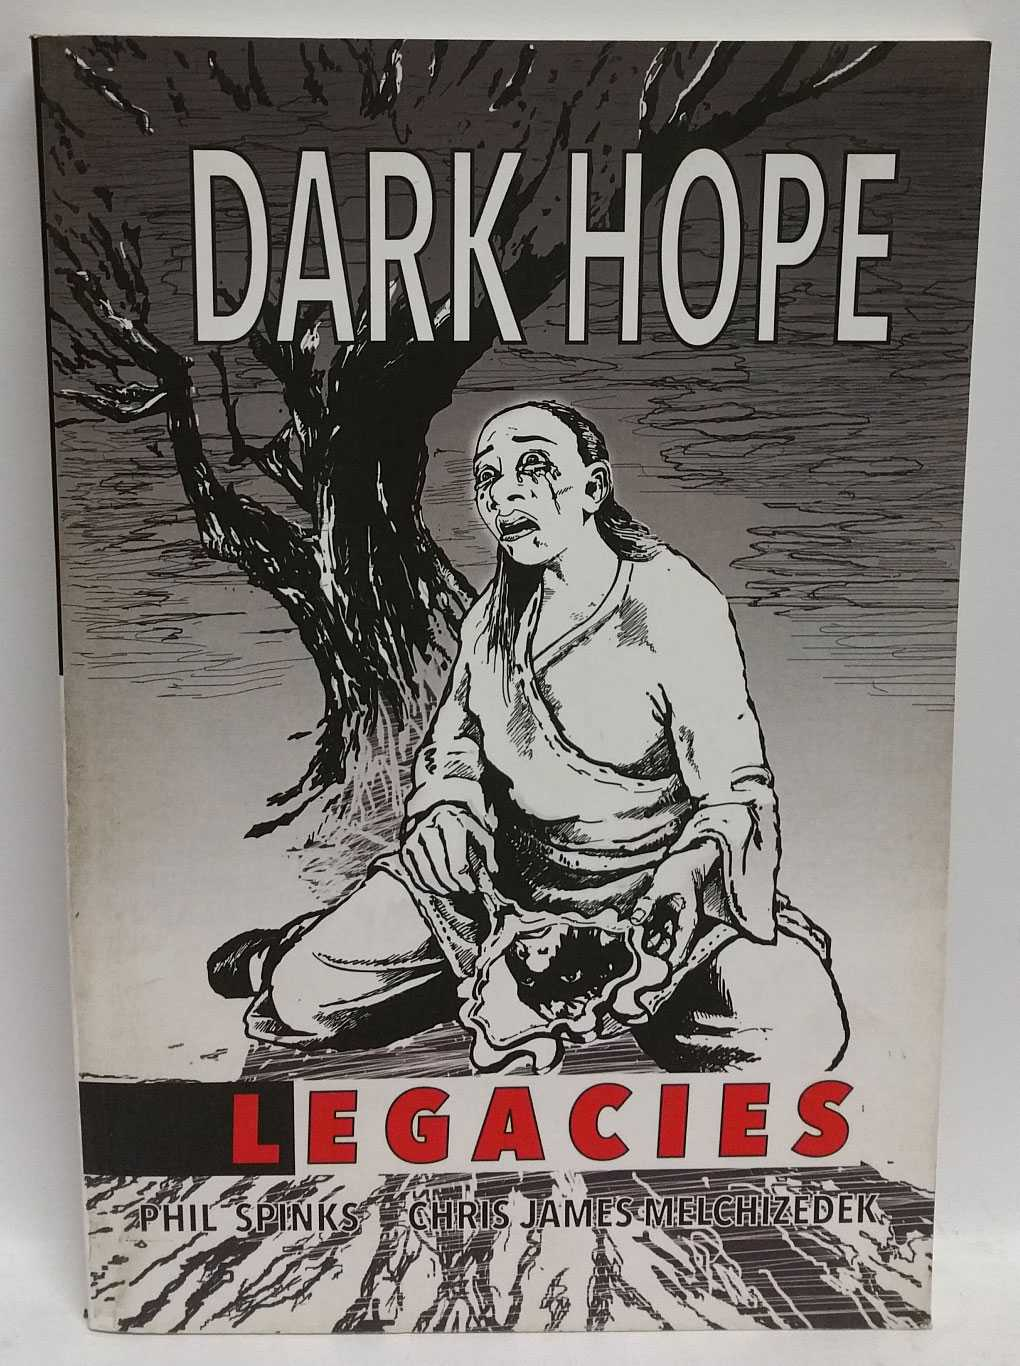 Dark Hope: Legacies, Chris James Melchizedek